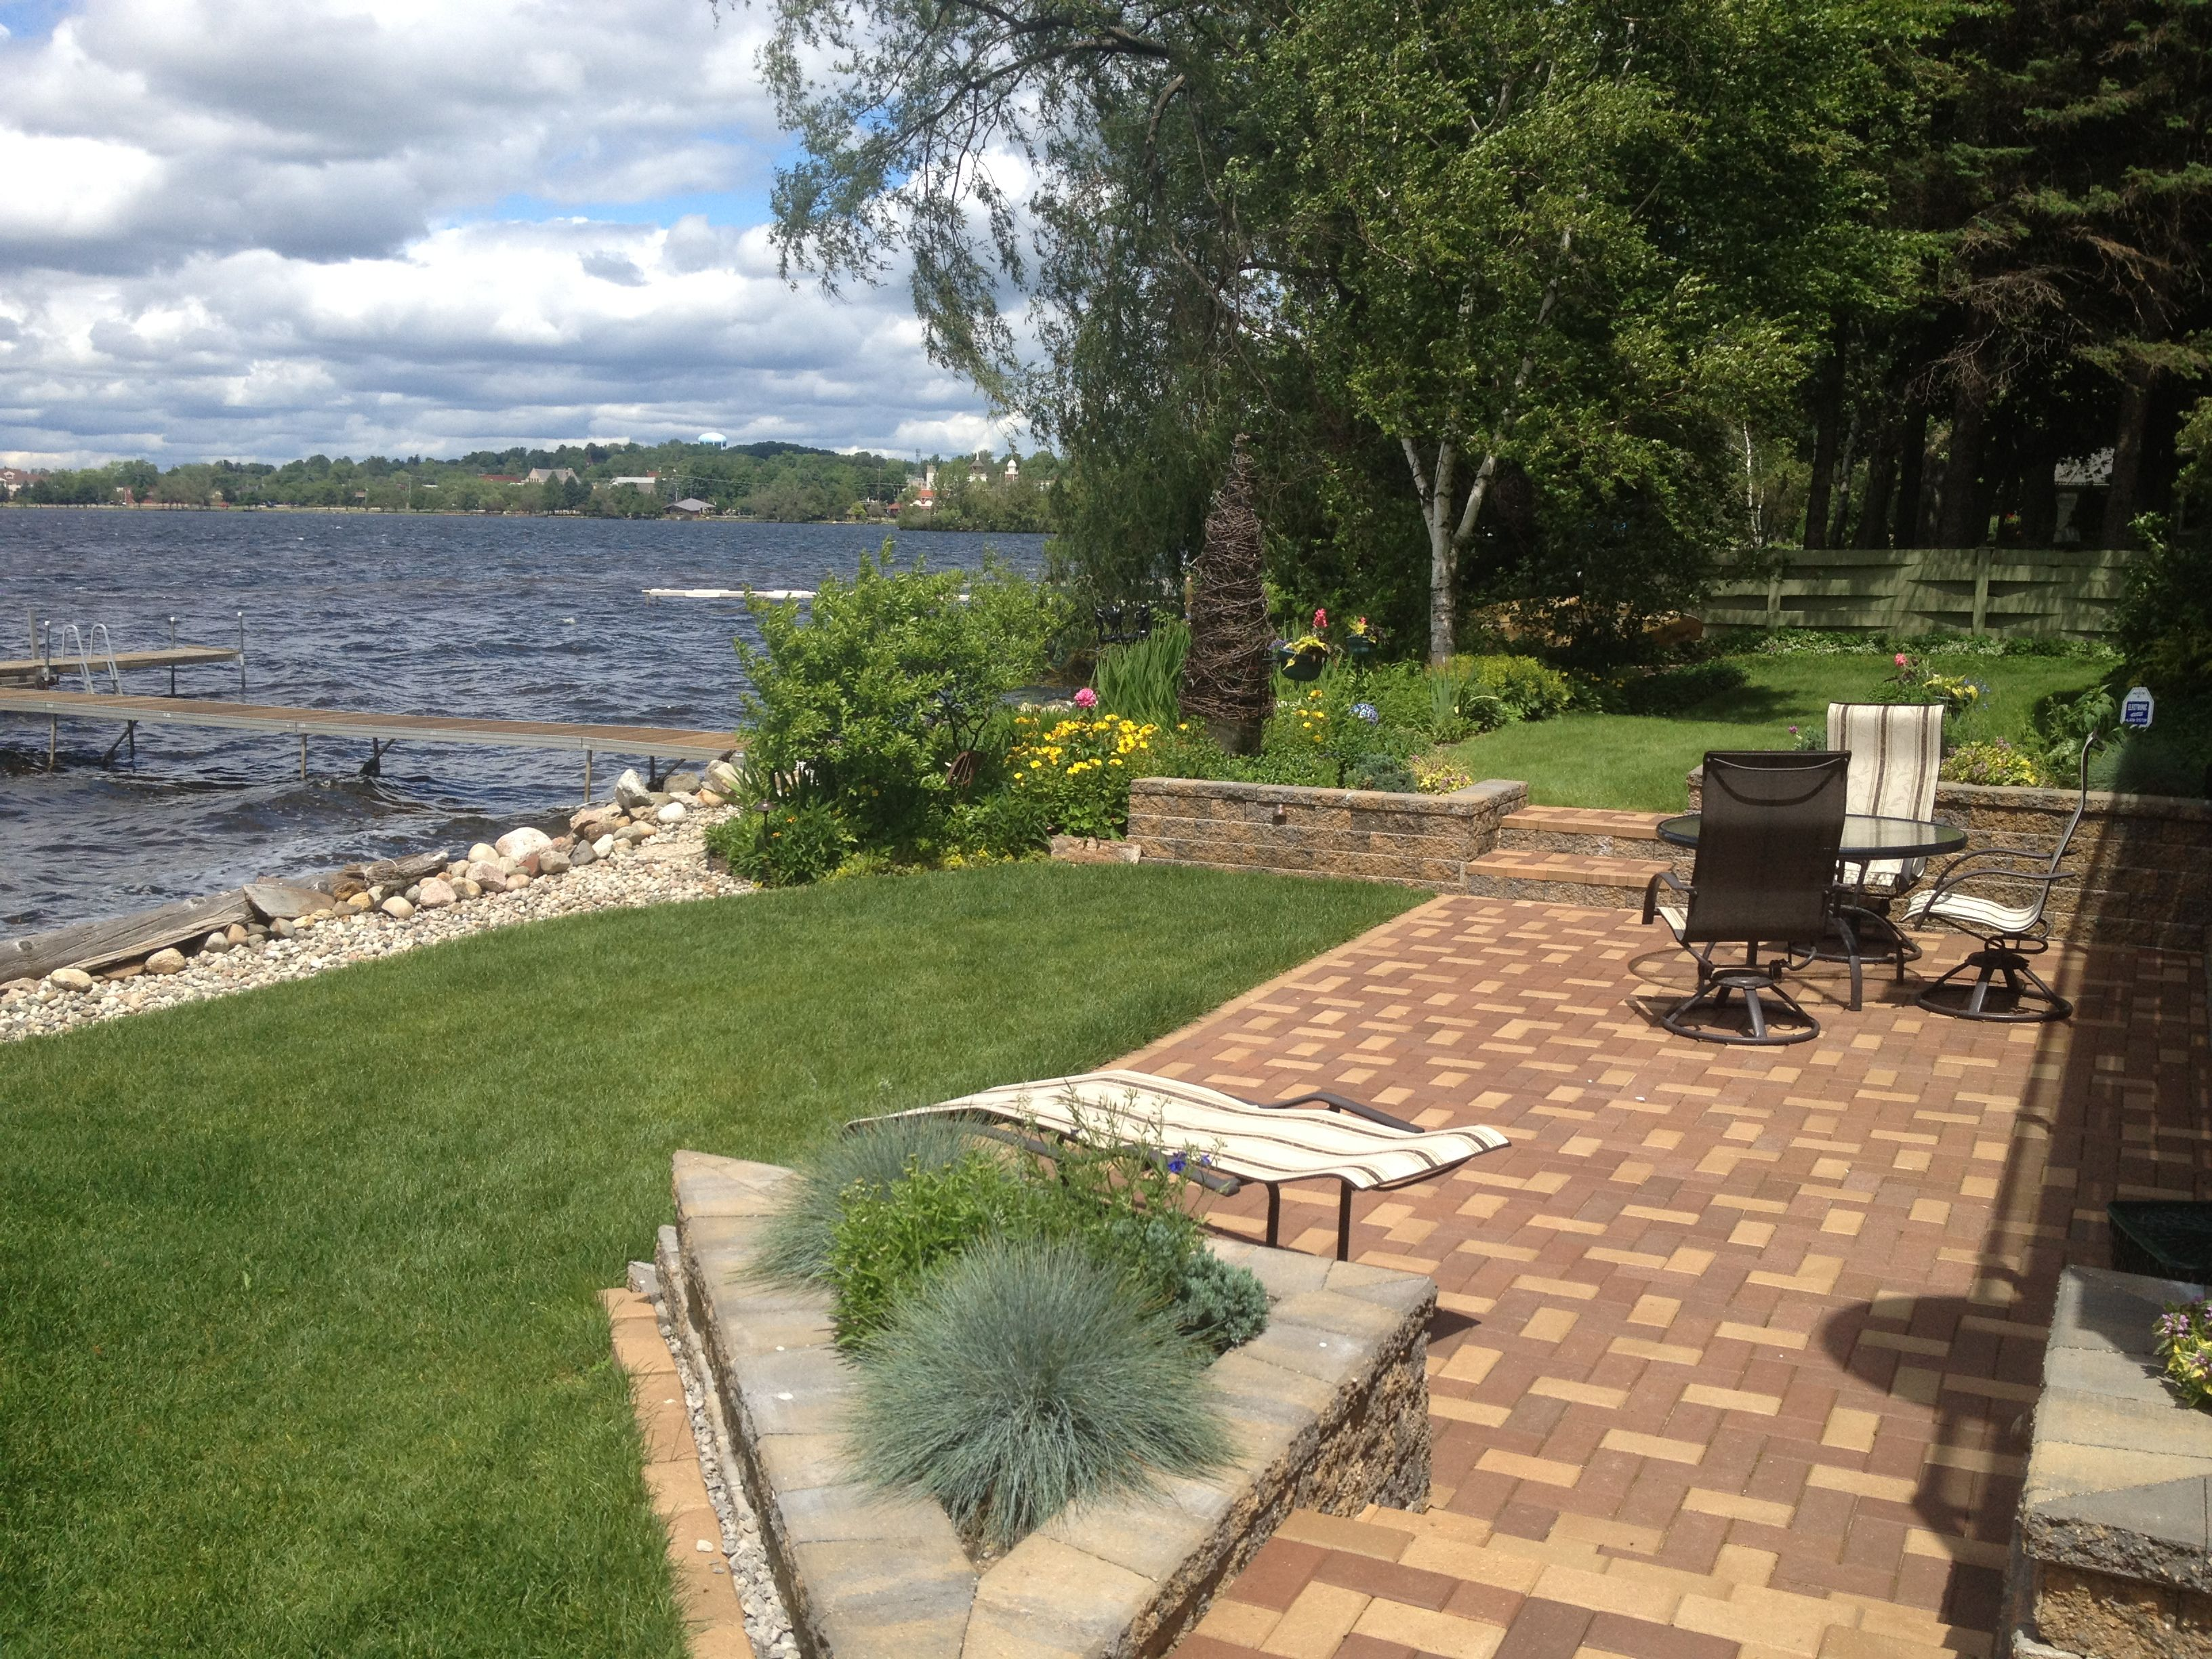 Lakefront Patio and Landscaping (With images) | Backyard ... on Lakefront Patio Ideas id=17977